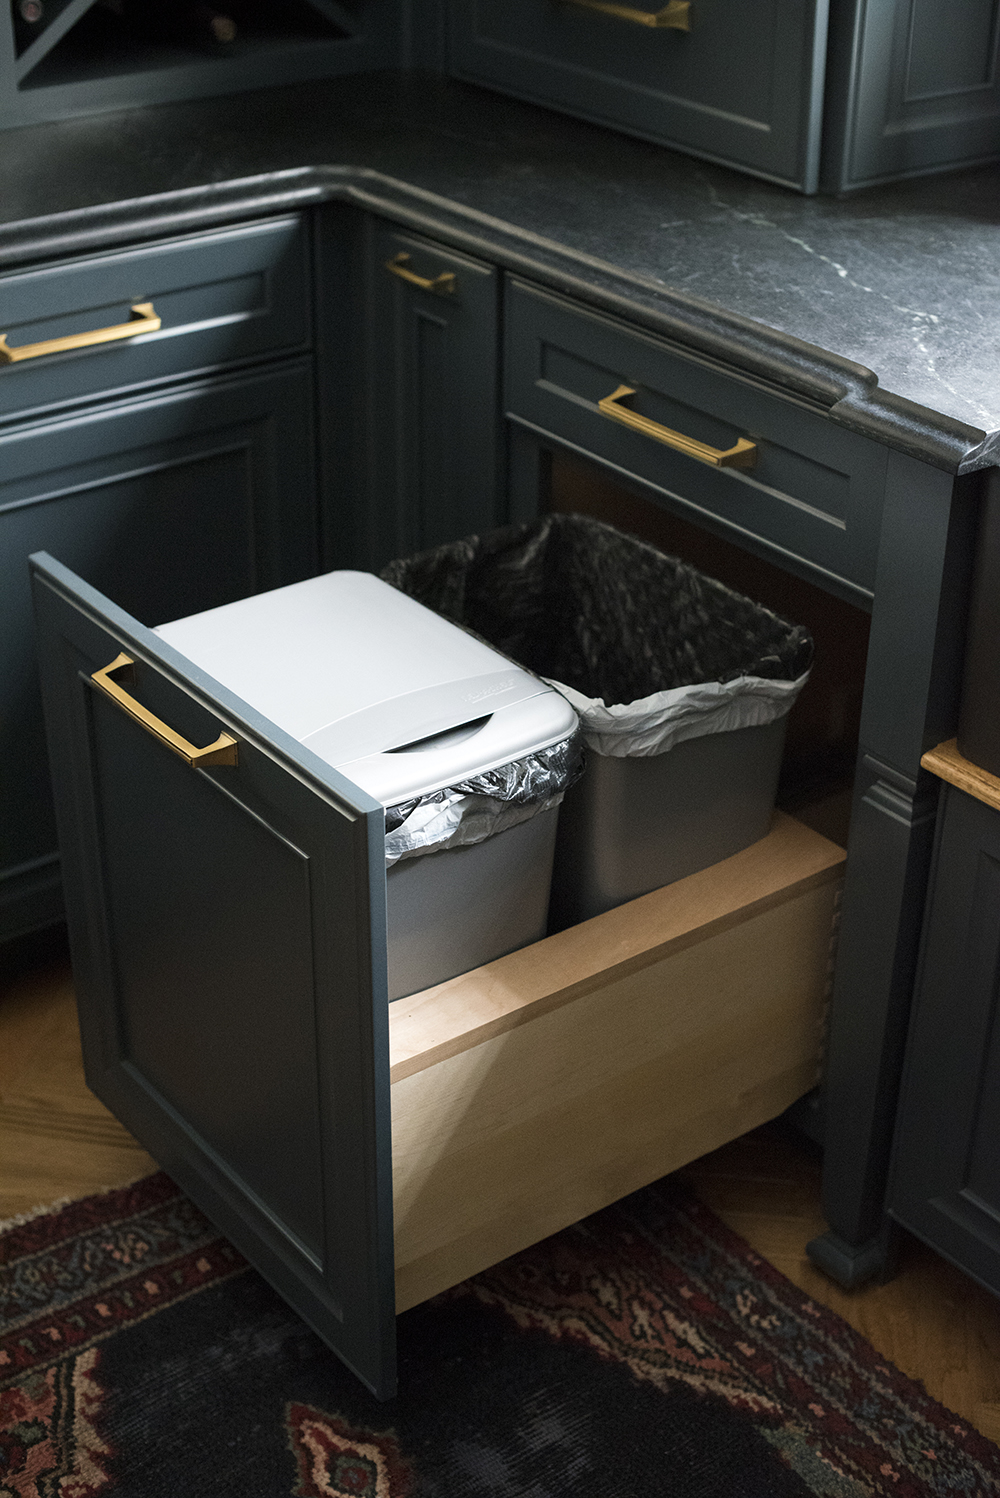 Tips for Designing a Functional Kitchen (+ A Video Recap) - roomfortuesday.com